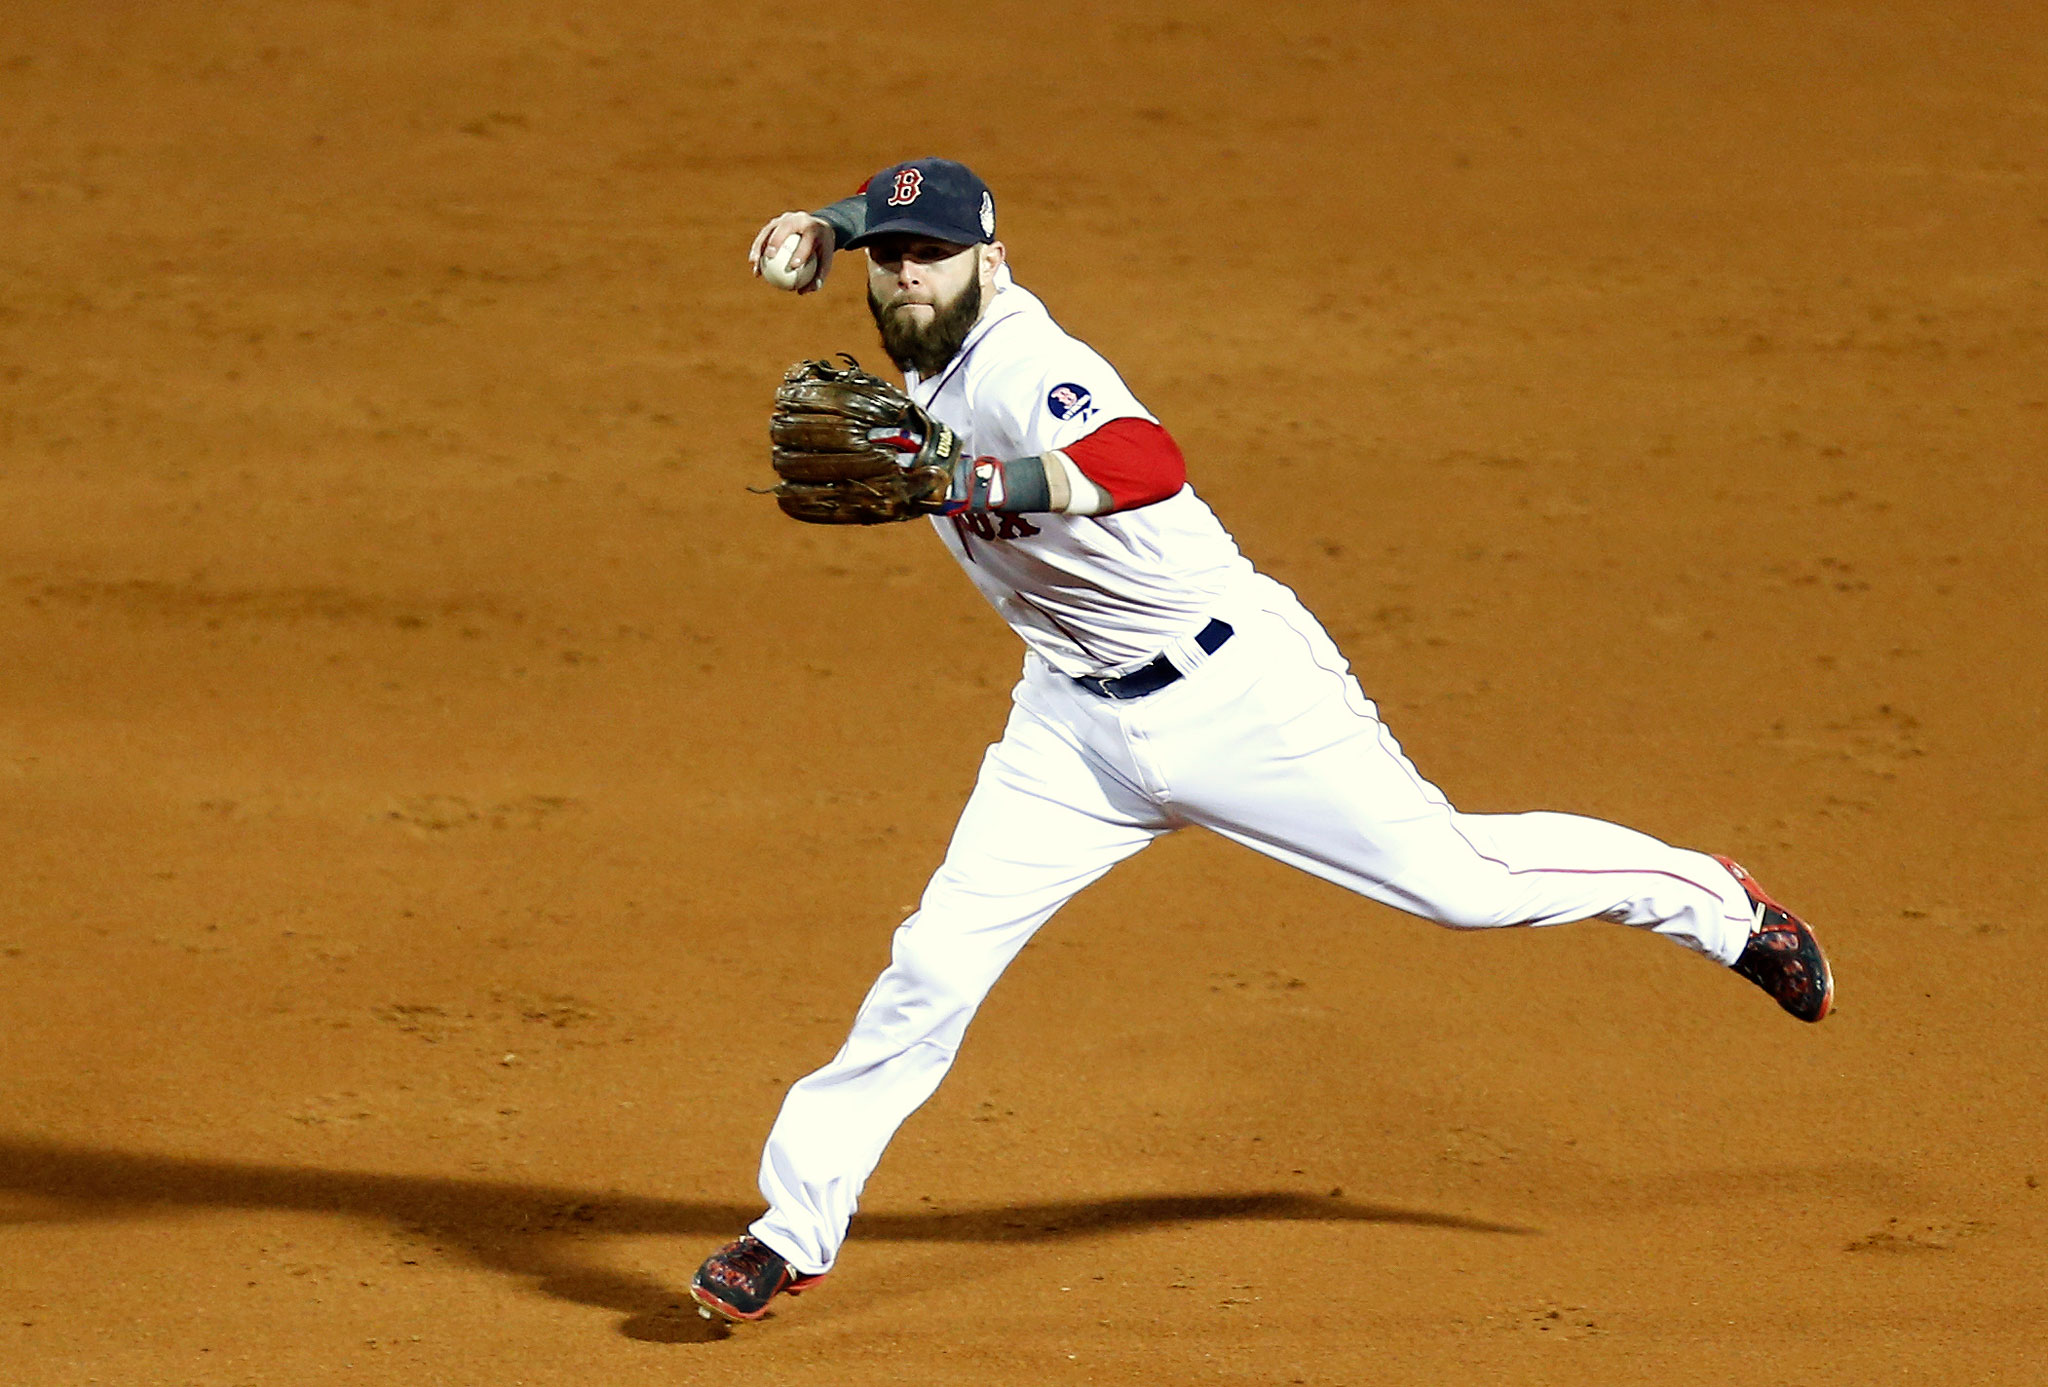 Second Base: Dustin Pedroia